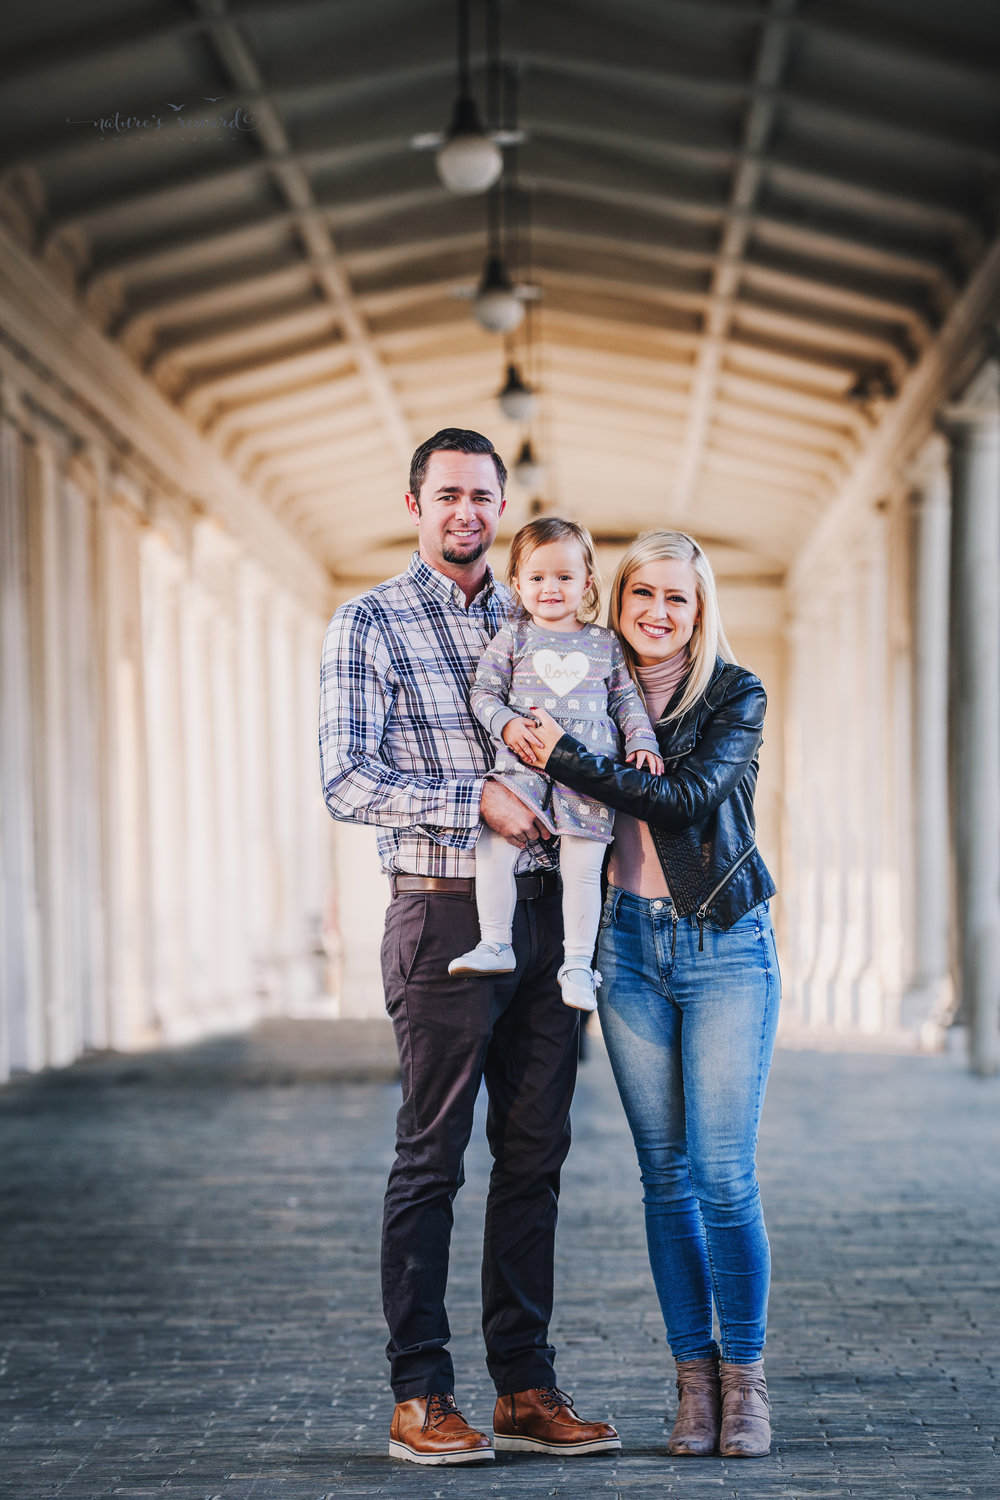 Gorgeous downtown family portrait by Nature's Reward Photography